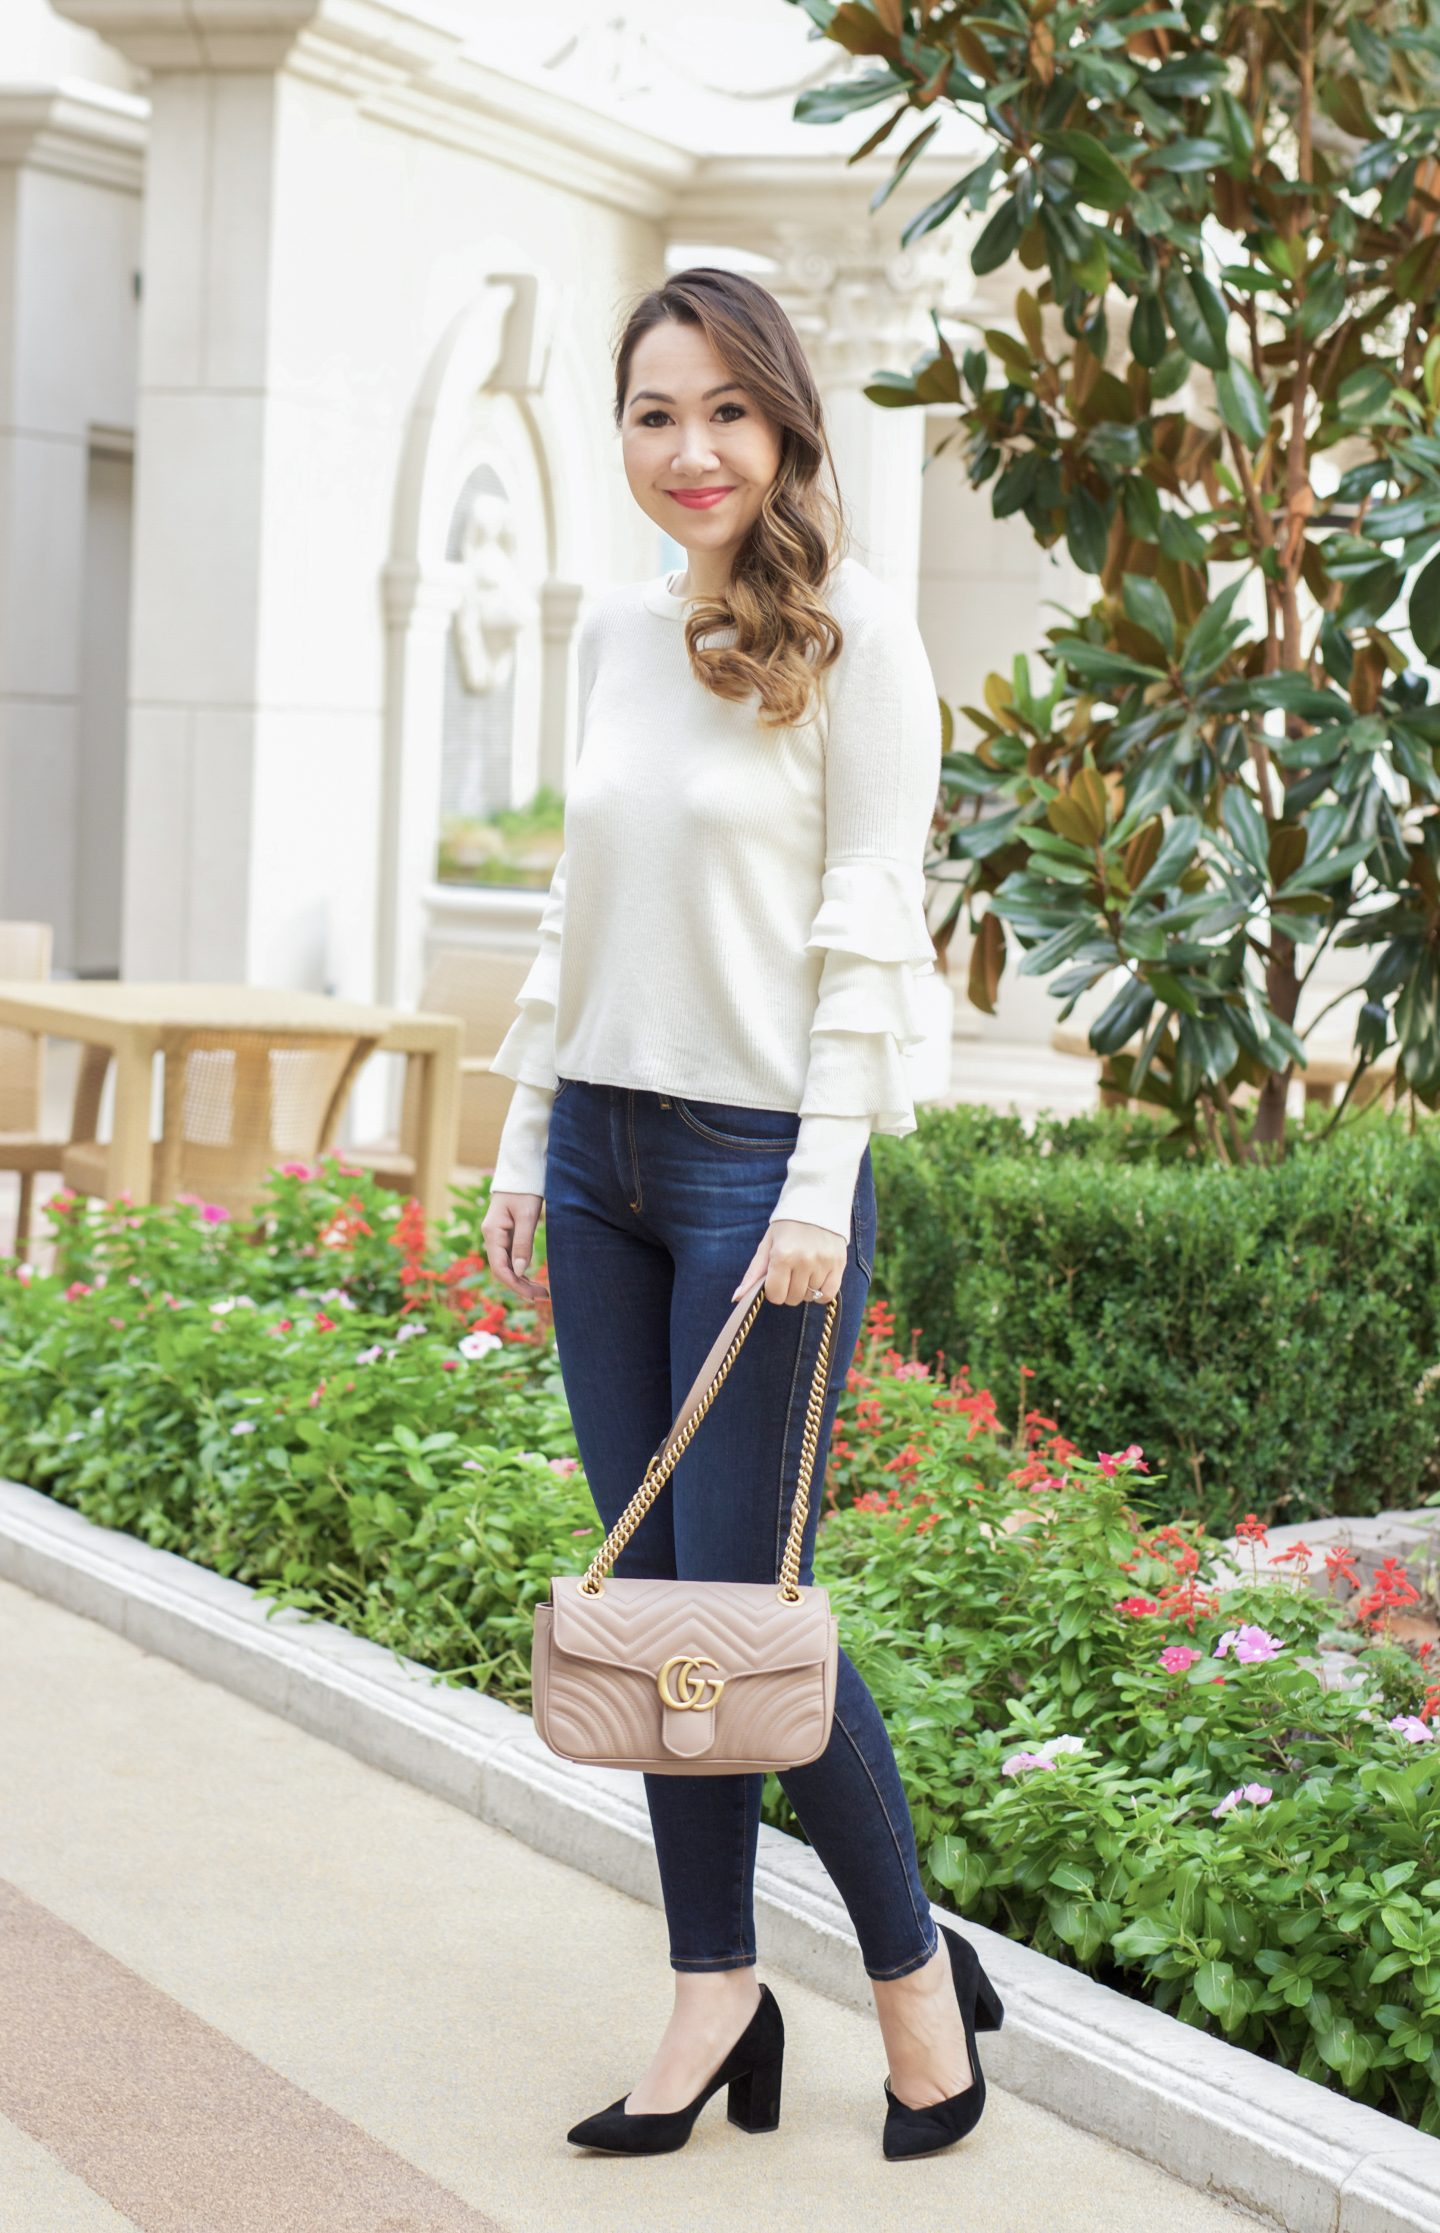 7acf5a360be7 As much as I love summer, I'm always so excited for sweater weather! I've  been stocking up my wardrobe with some key pieces for Fall/ Autumn and  there are ...